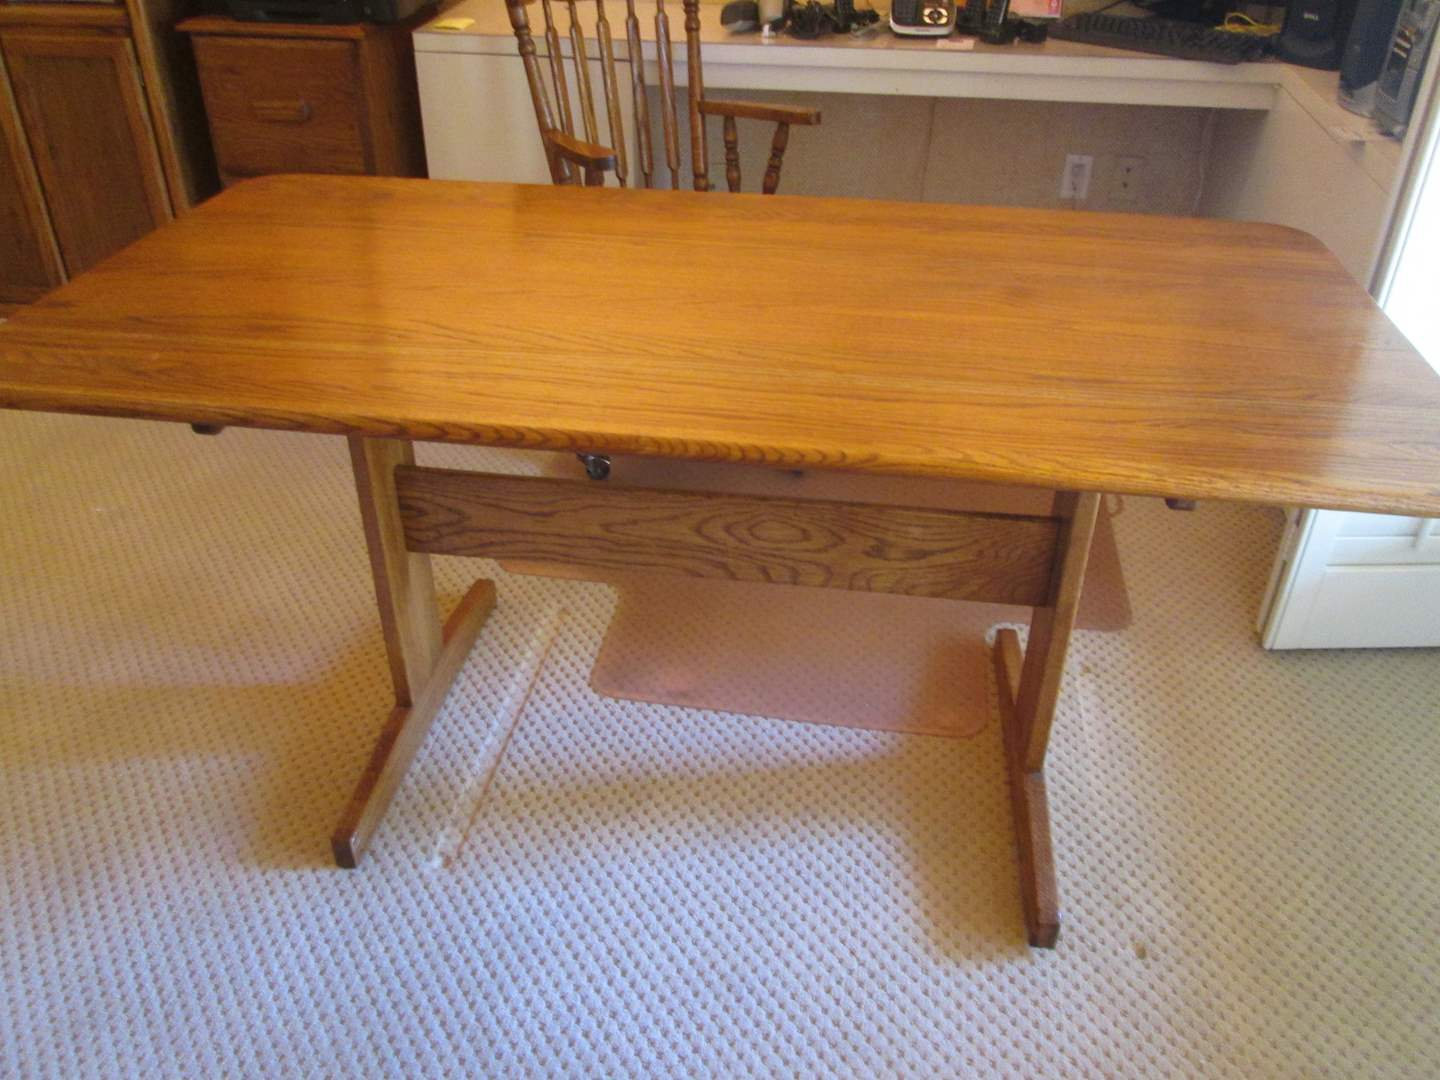 Lot # 195 - Office Desk or Table (main image)